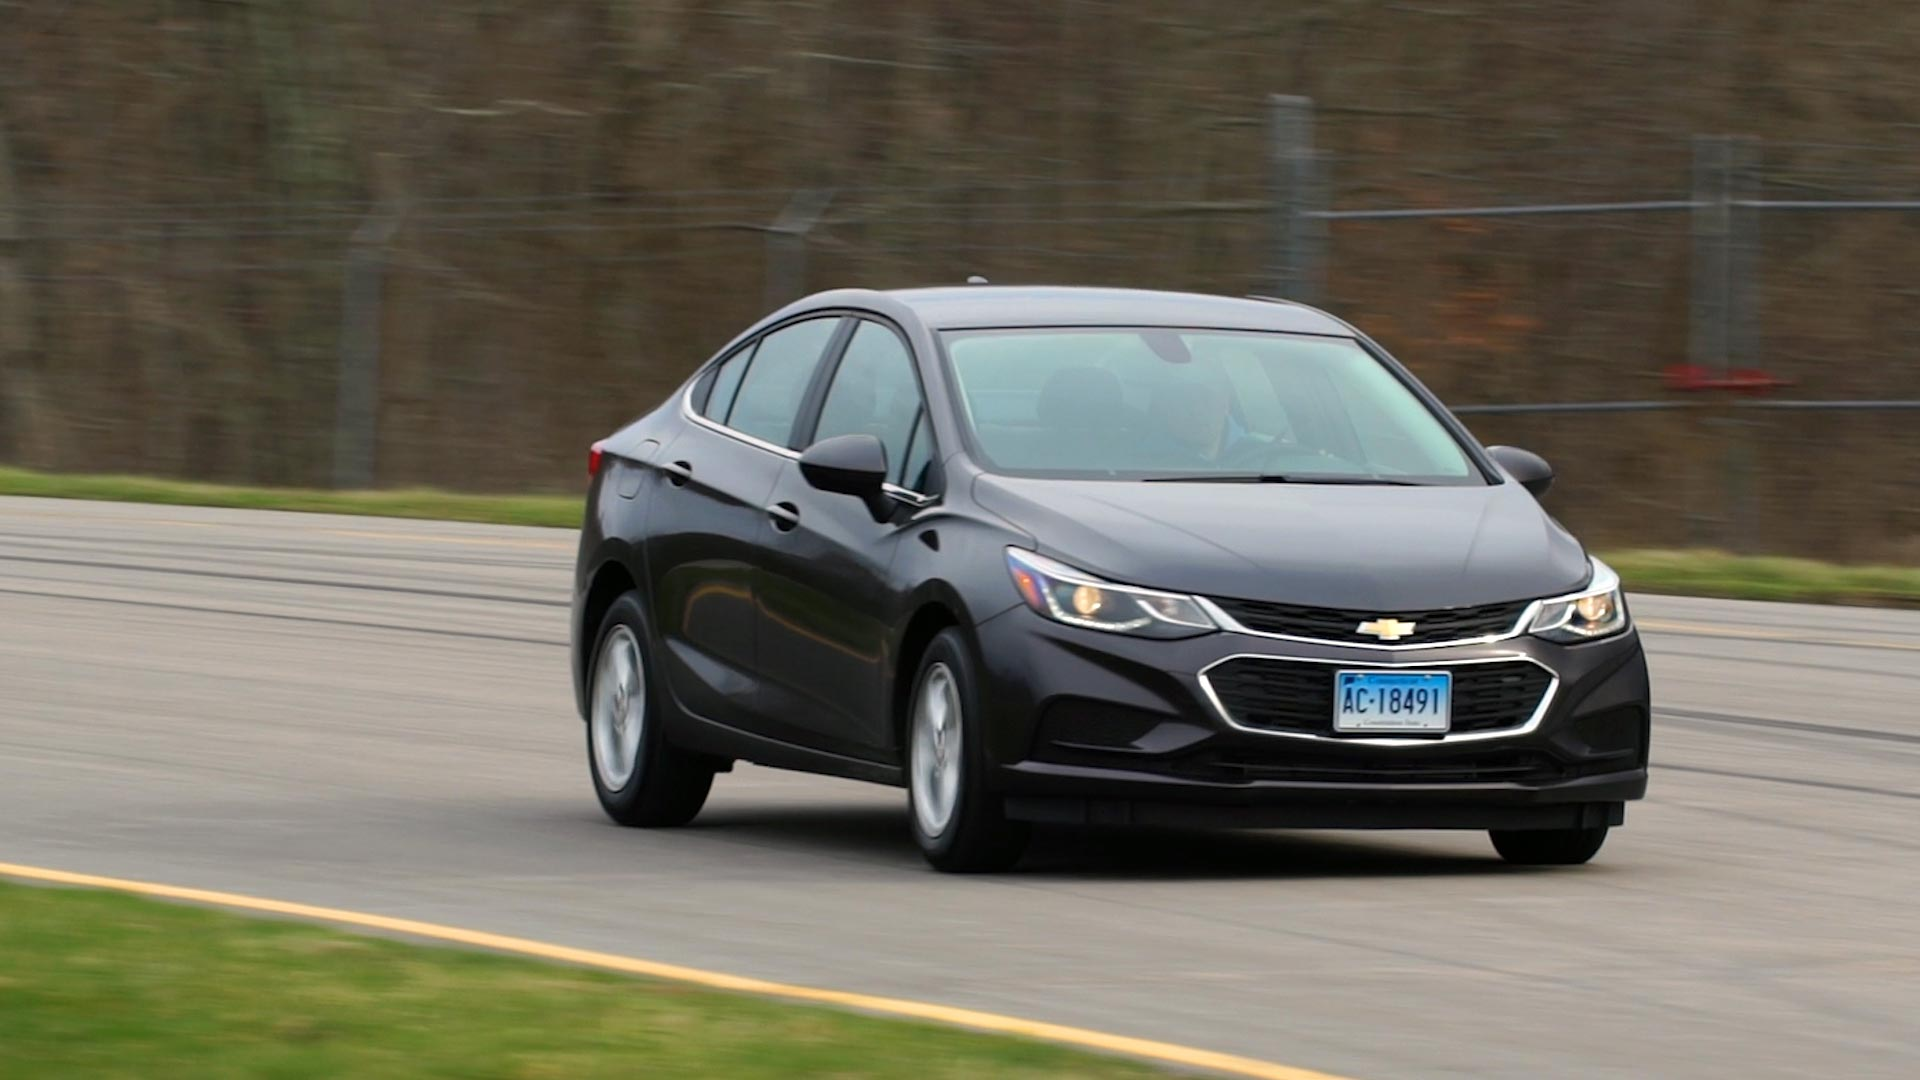 Chevrolet Cruze Owners Manual: Driving and Operating